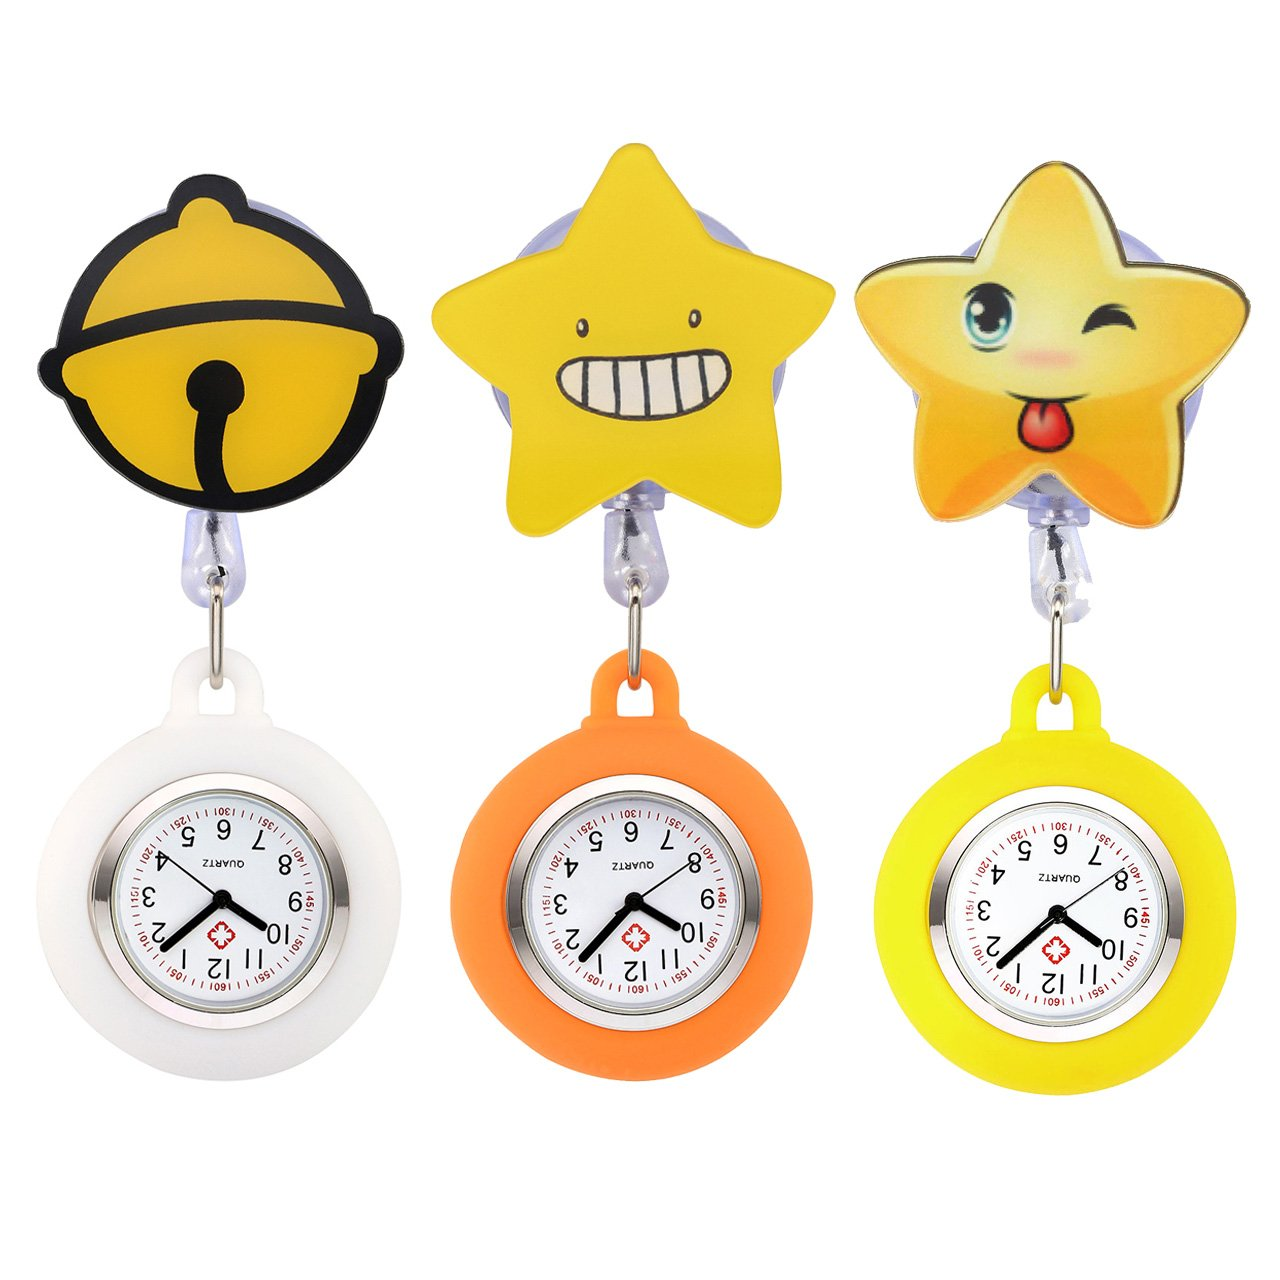 Top Plaza 3 Pcs Girls' Kid's Cute Lovely Cartoon Pattern Silicone Clip on Fob Brooch Hanging Easy Pull Clasp Stretch Analog Quartz Pocket Nurse Watches #2 by Top Plaza (Image #1)